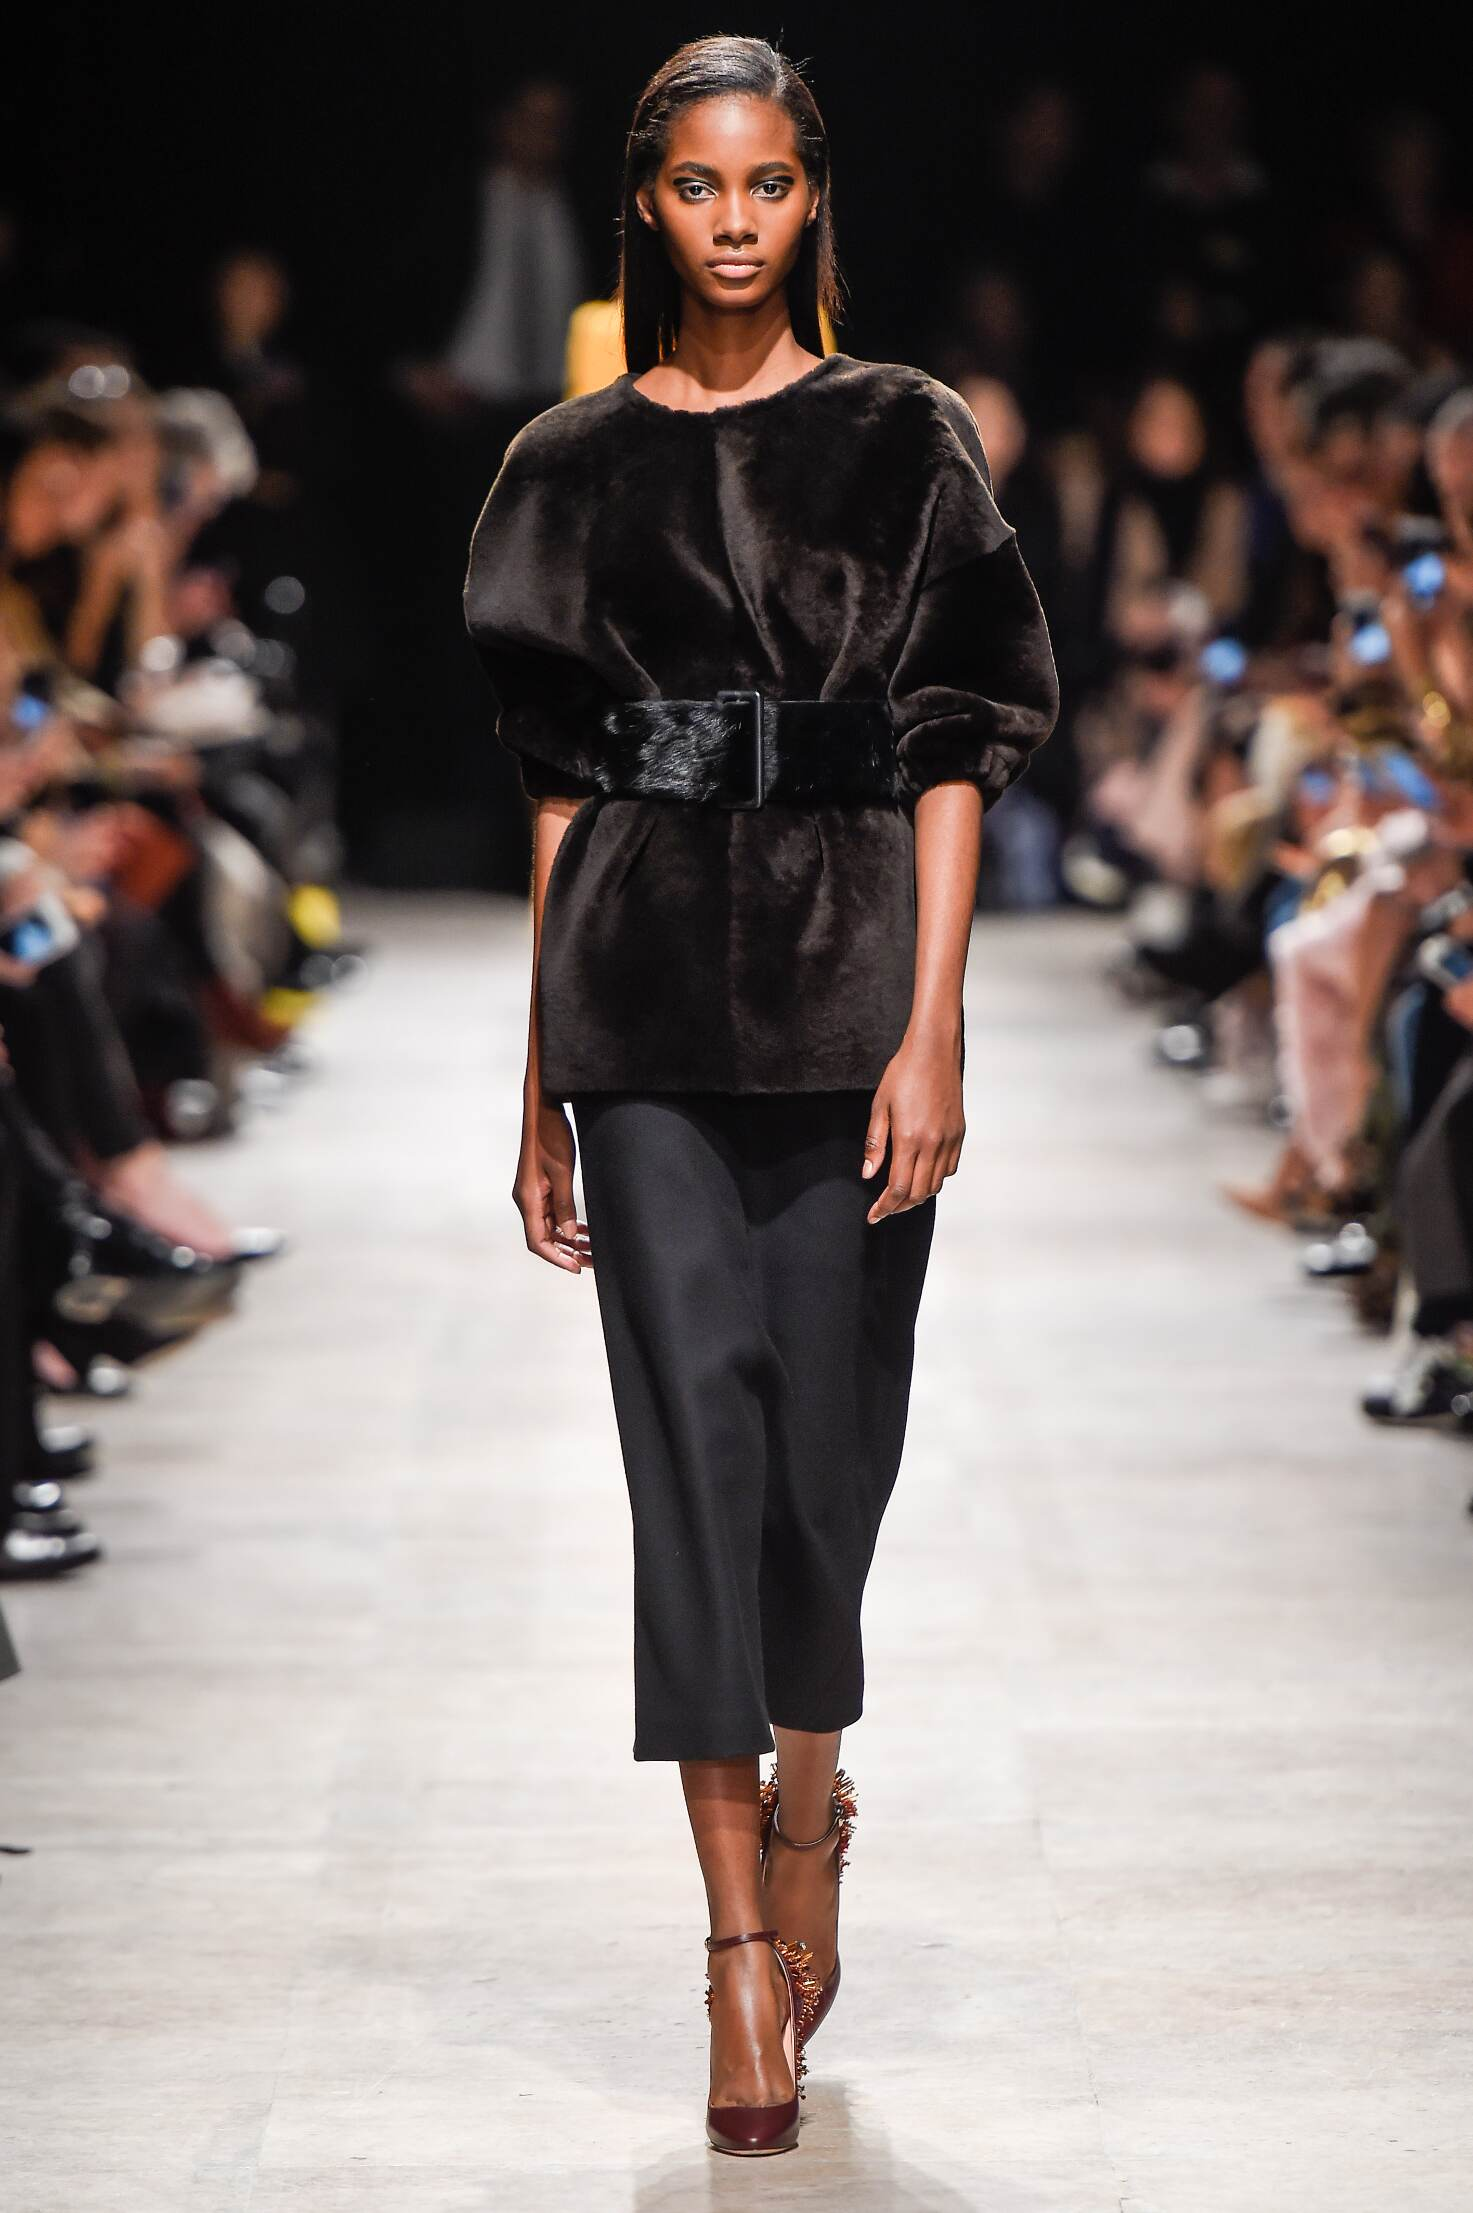 Rochas Fall Winter 2015 16 Womenswear Collection Paris Fashion Week Fashion Show